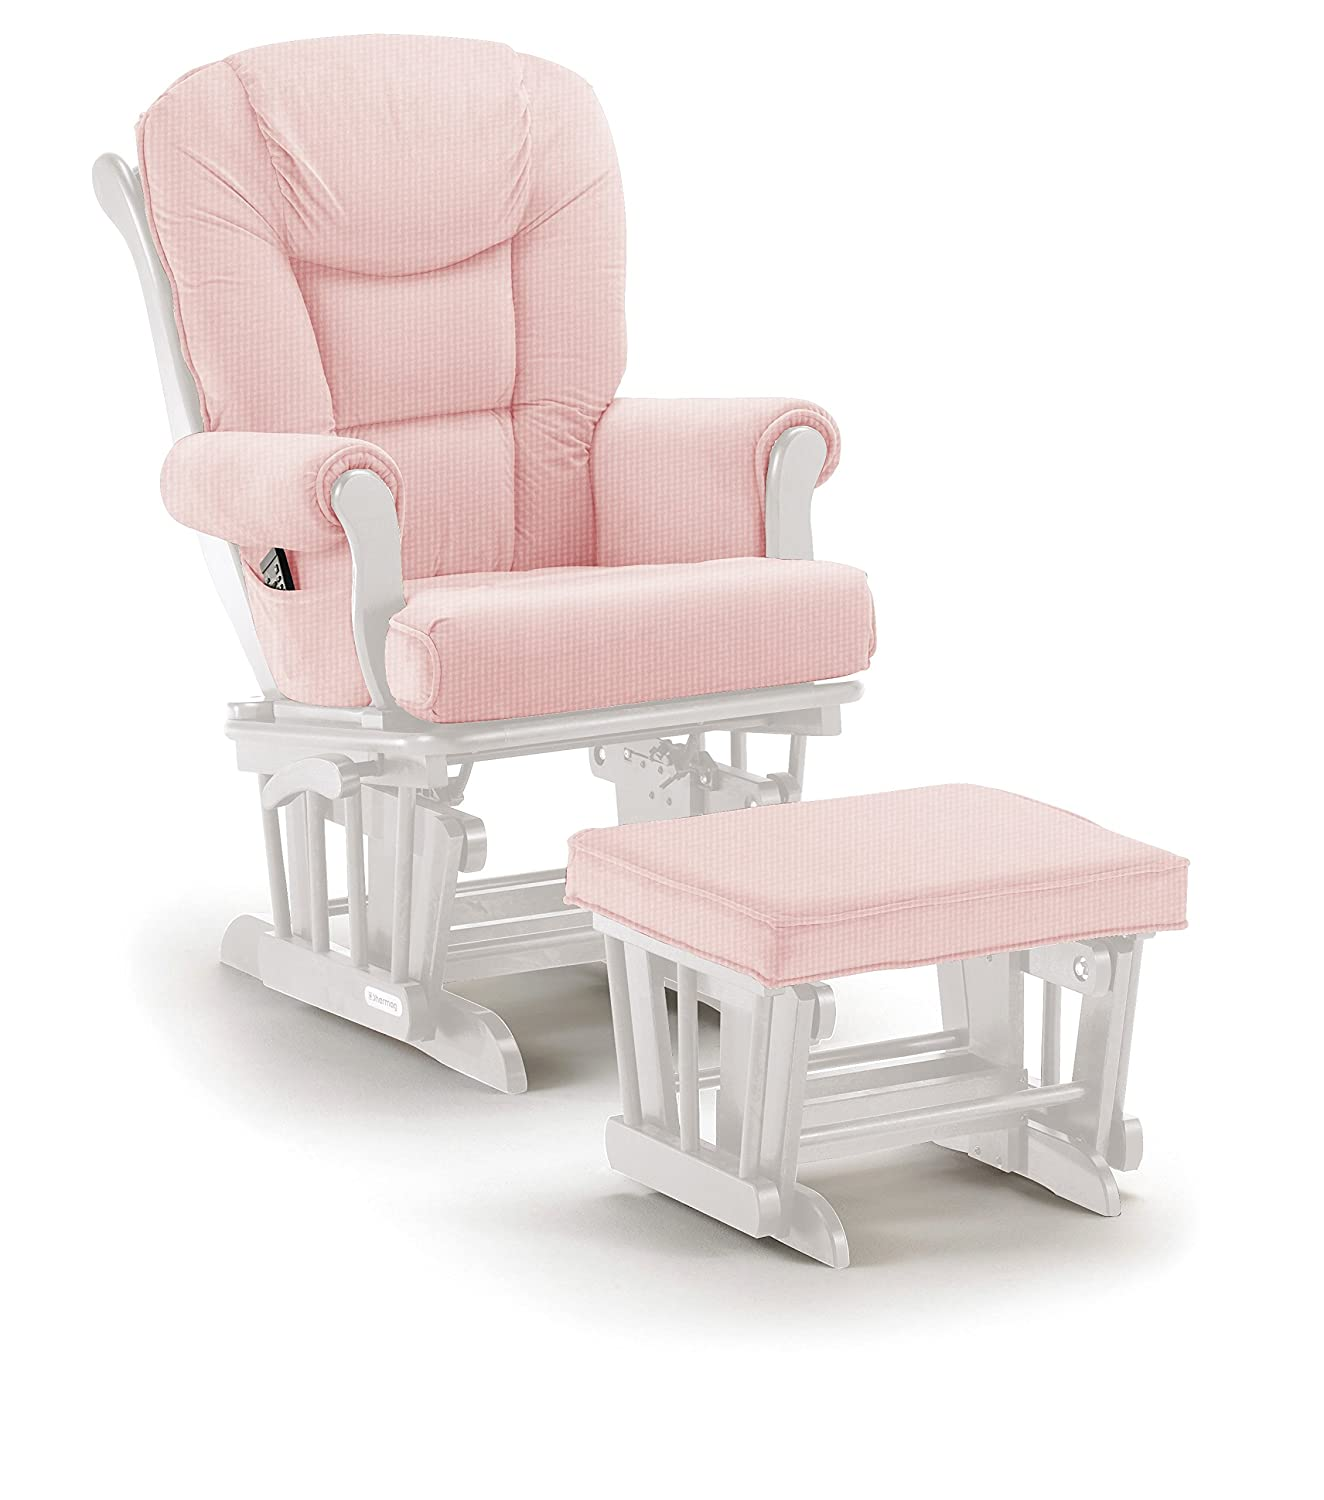 Shermag Glider Rocker Combo, White with Pickwick Pink 37779CB.15.1015